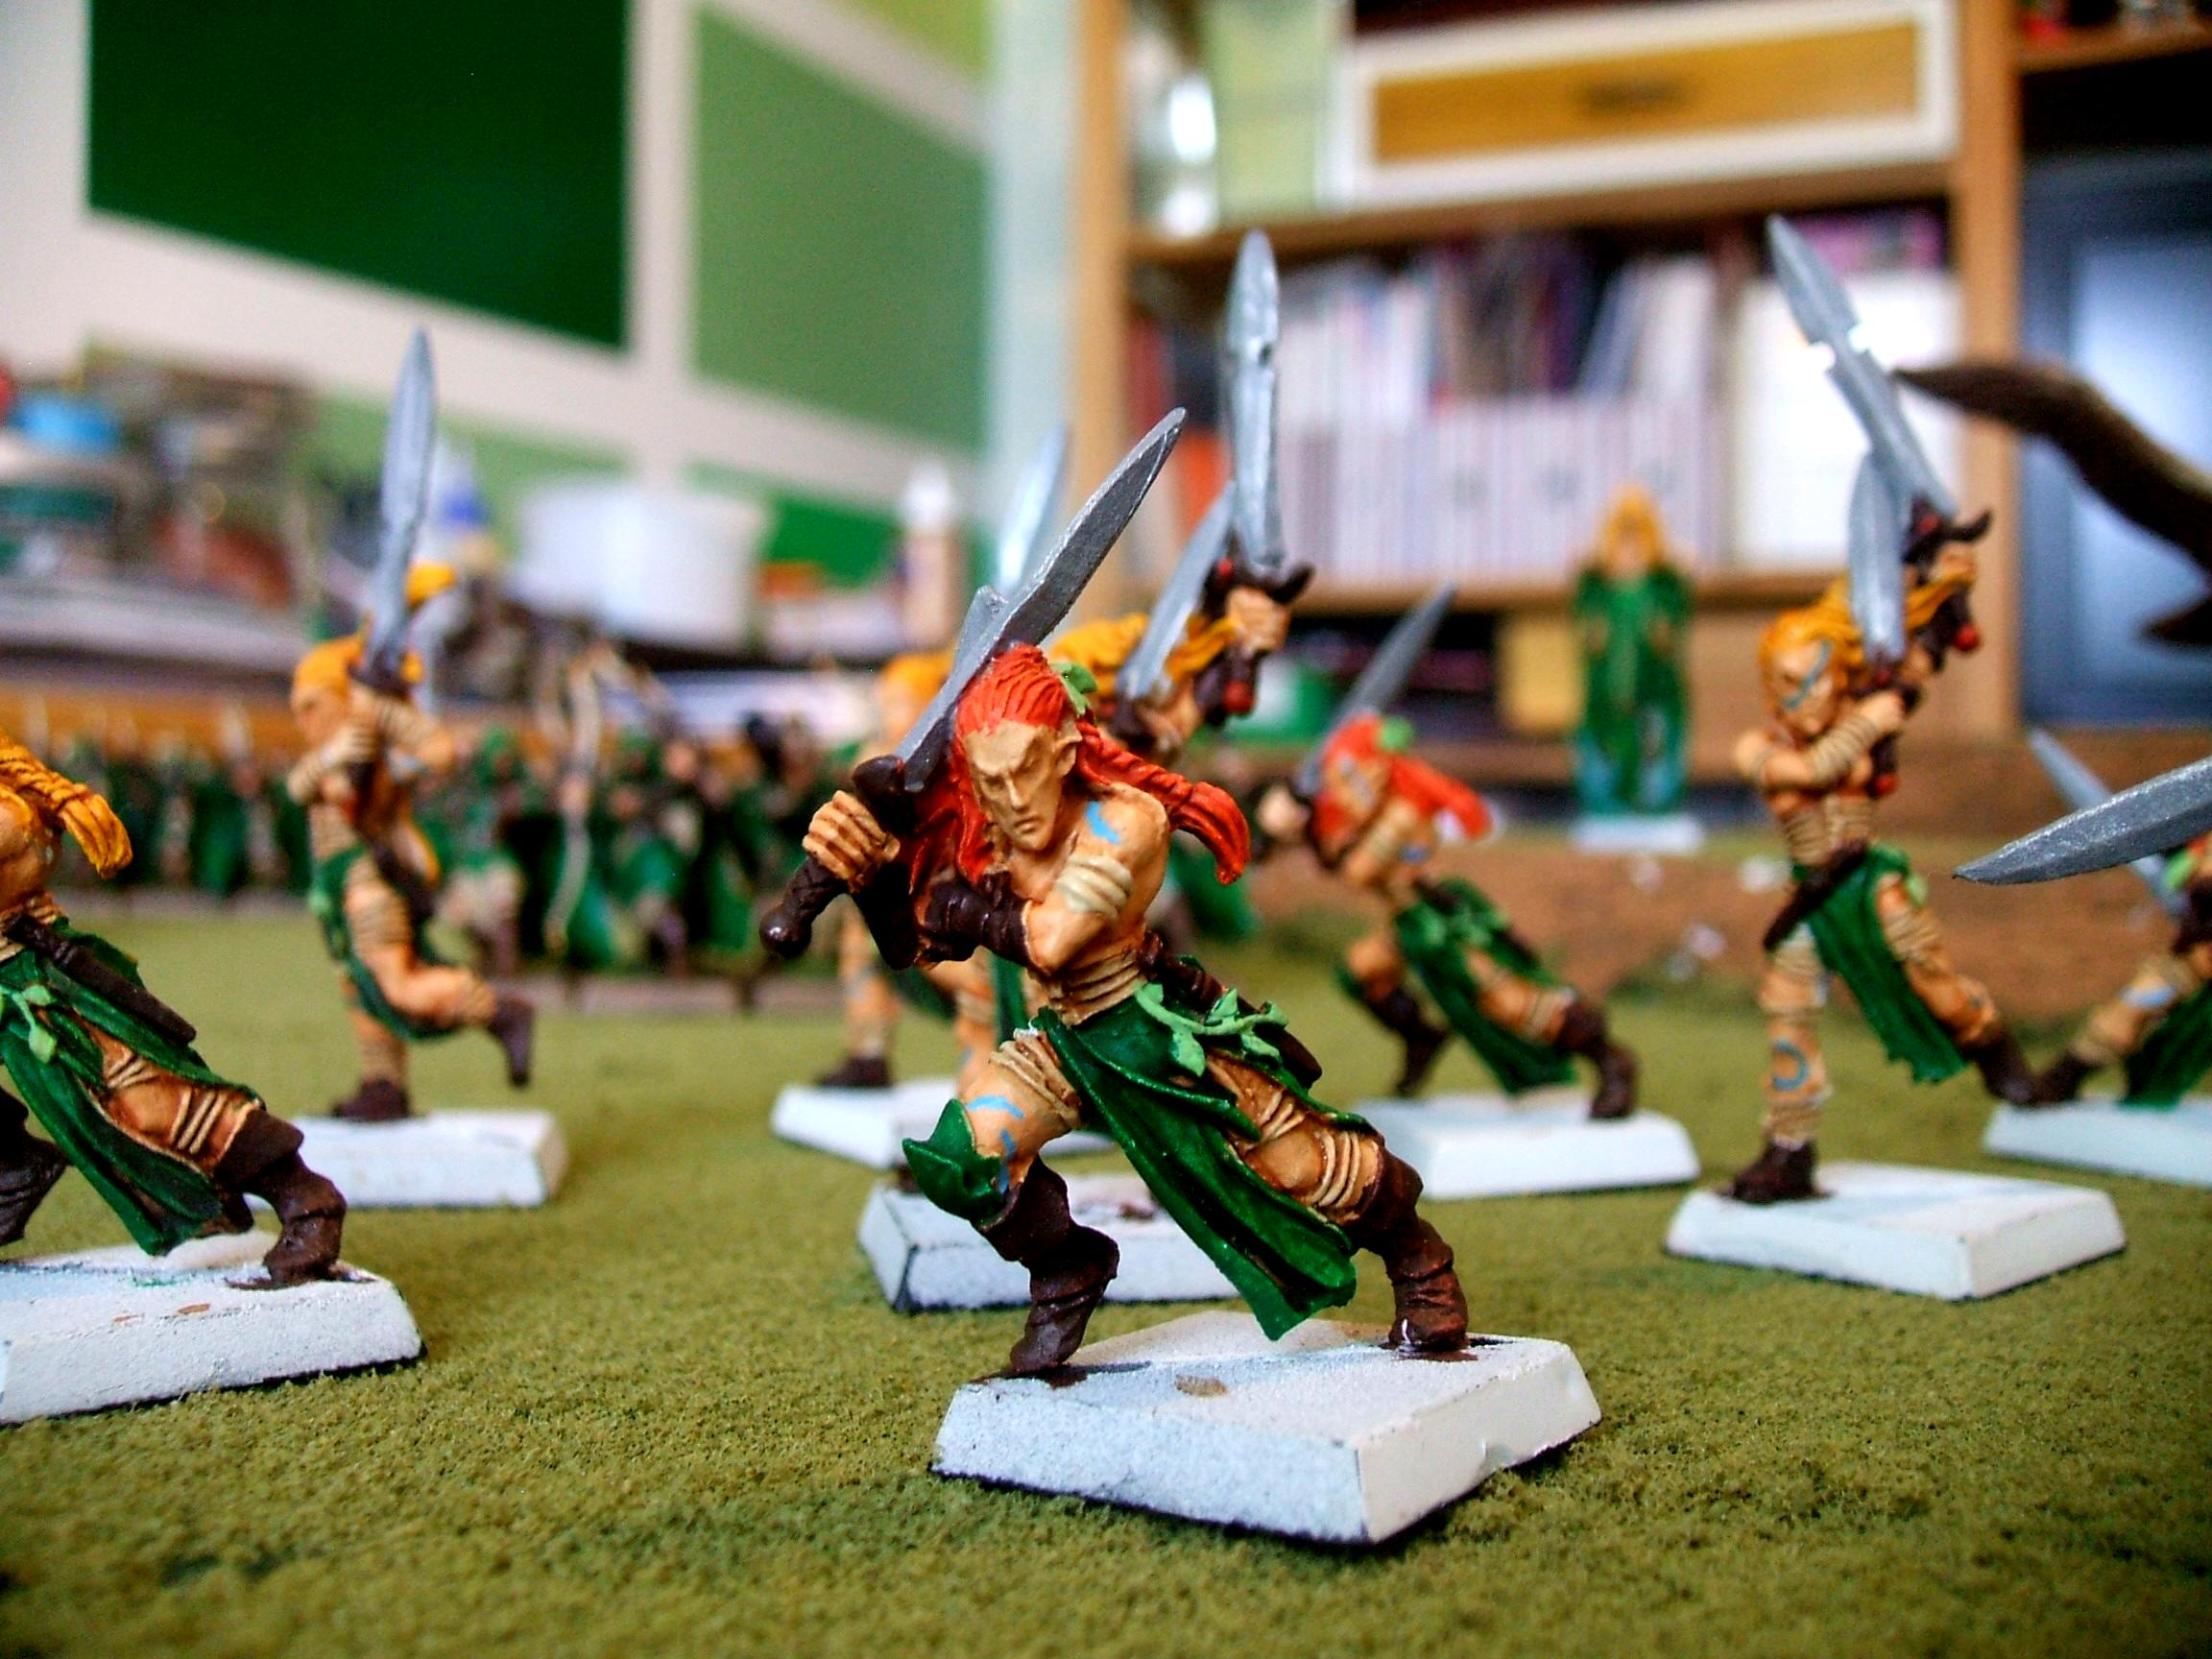 Wardancers, Wood Elves, Fantasy